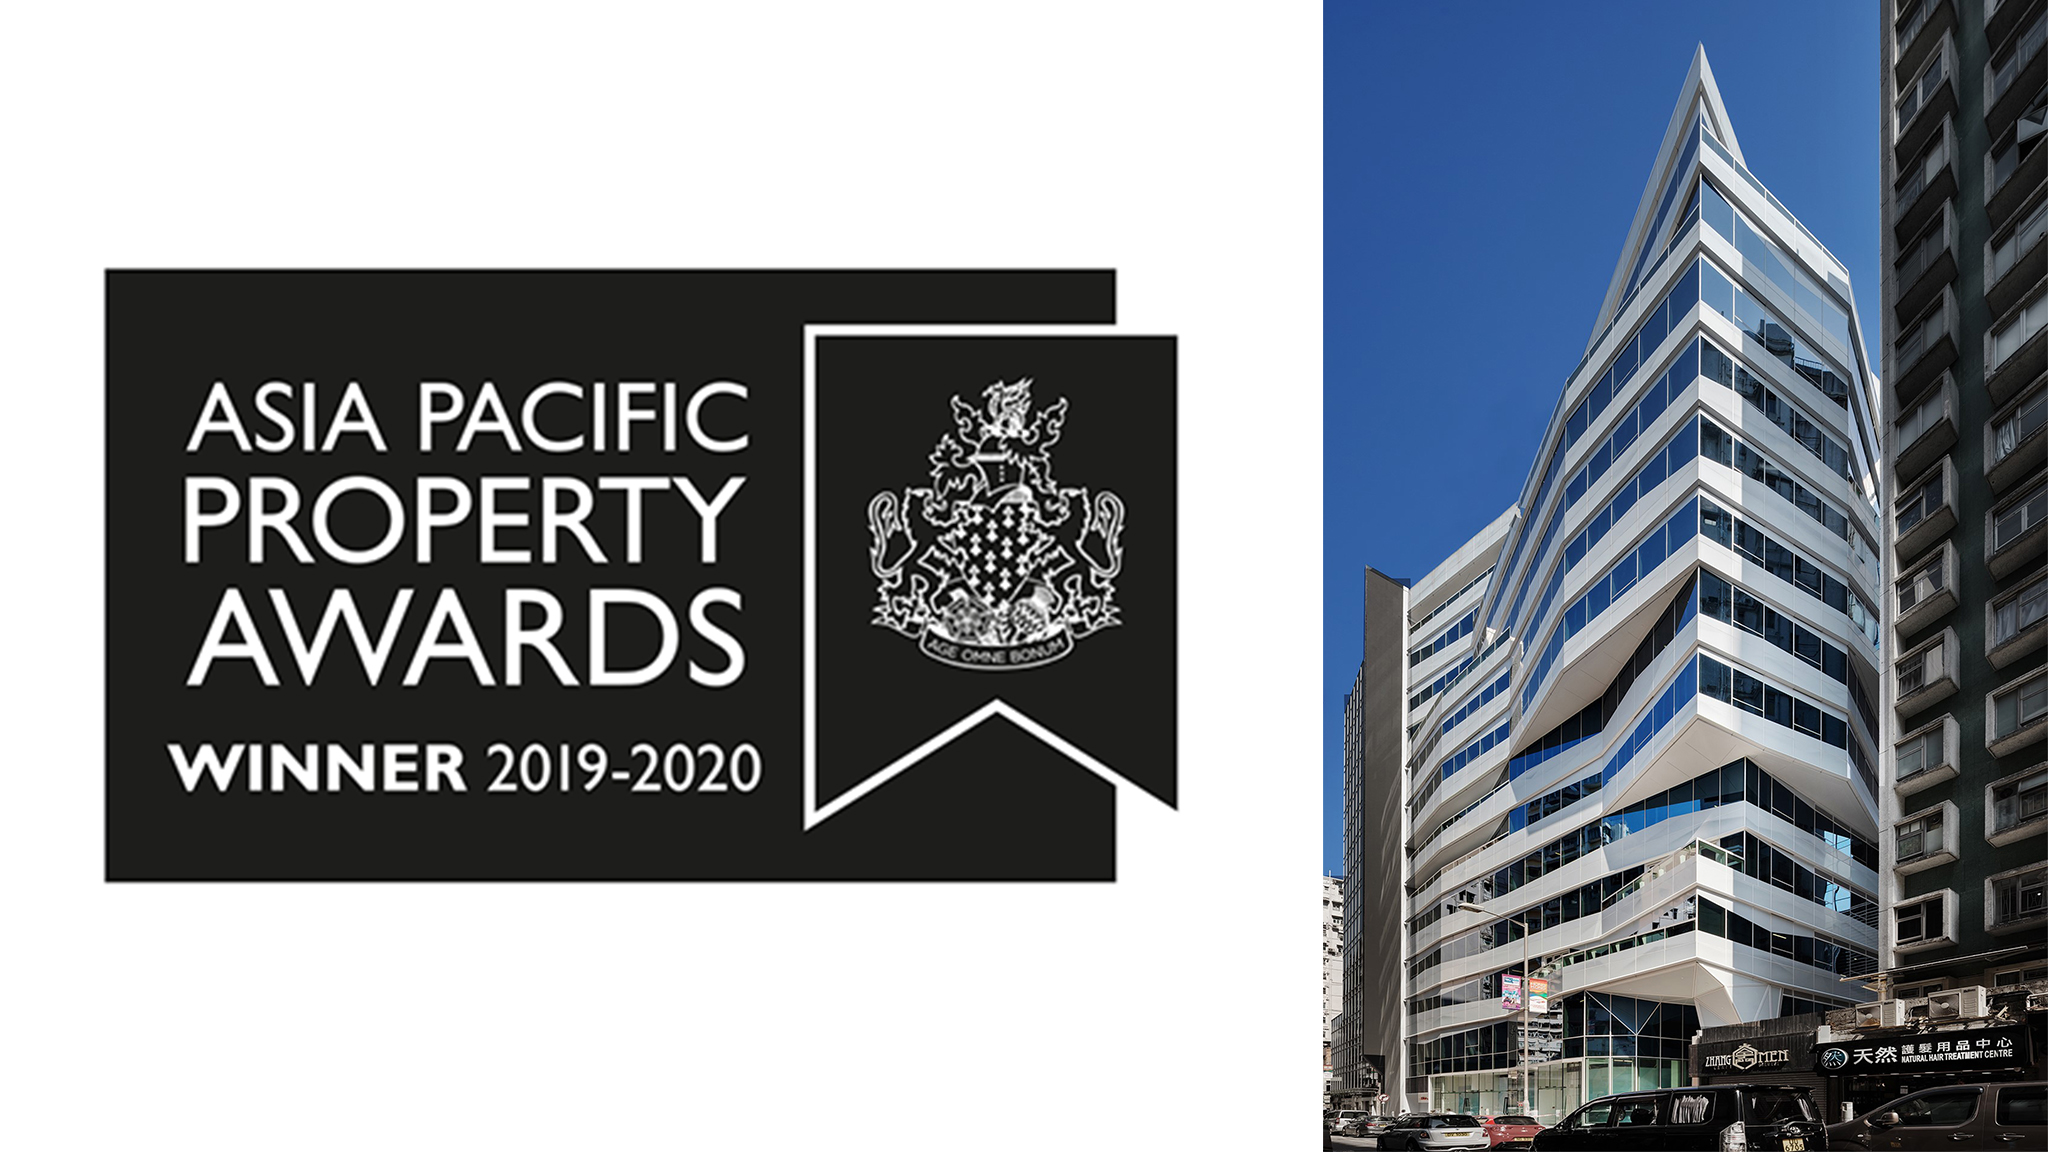 ARK receives Asia Pacific Property Awards 2019!